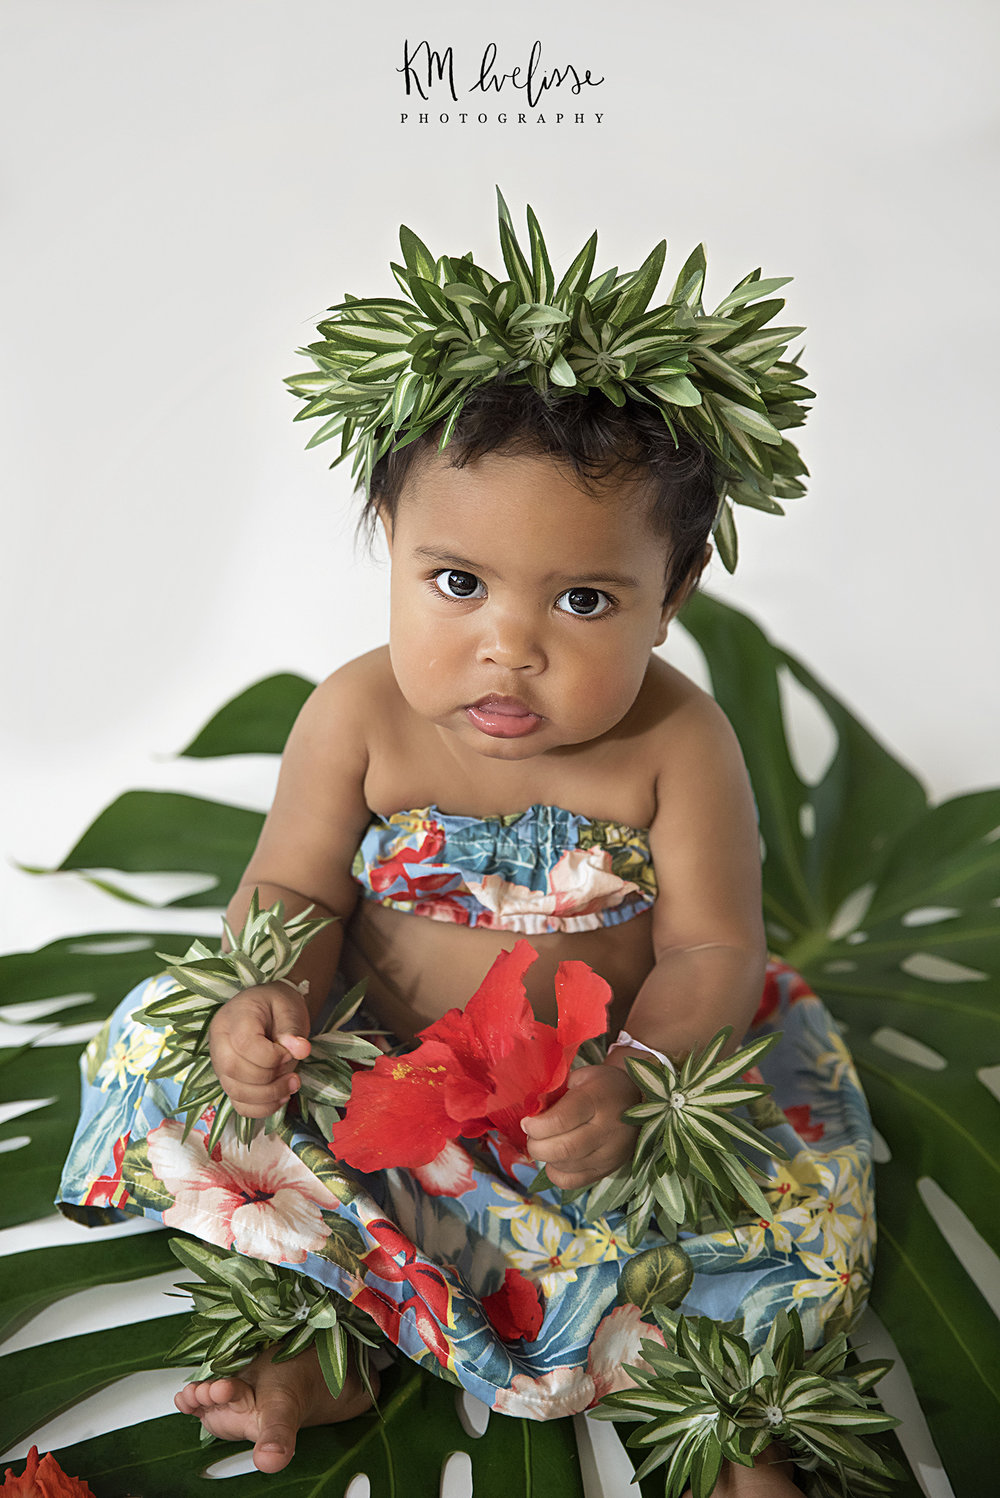 Oahu Hawaii cake smash first birthday children portrats photographer